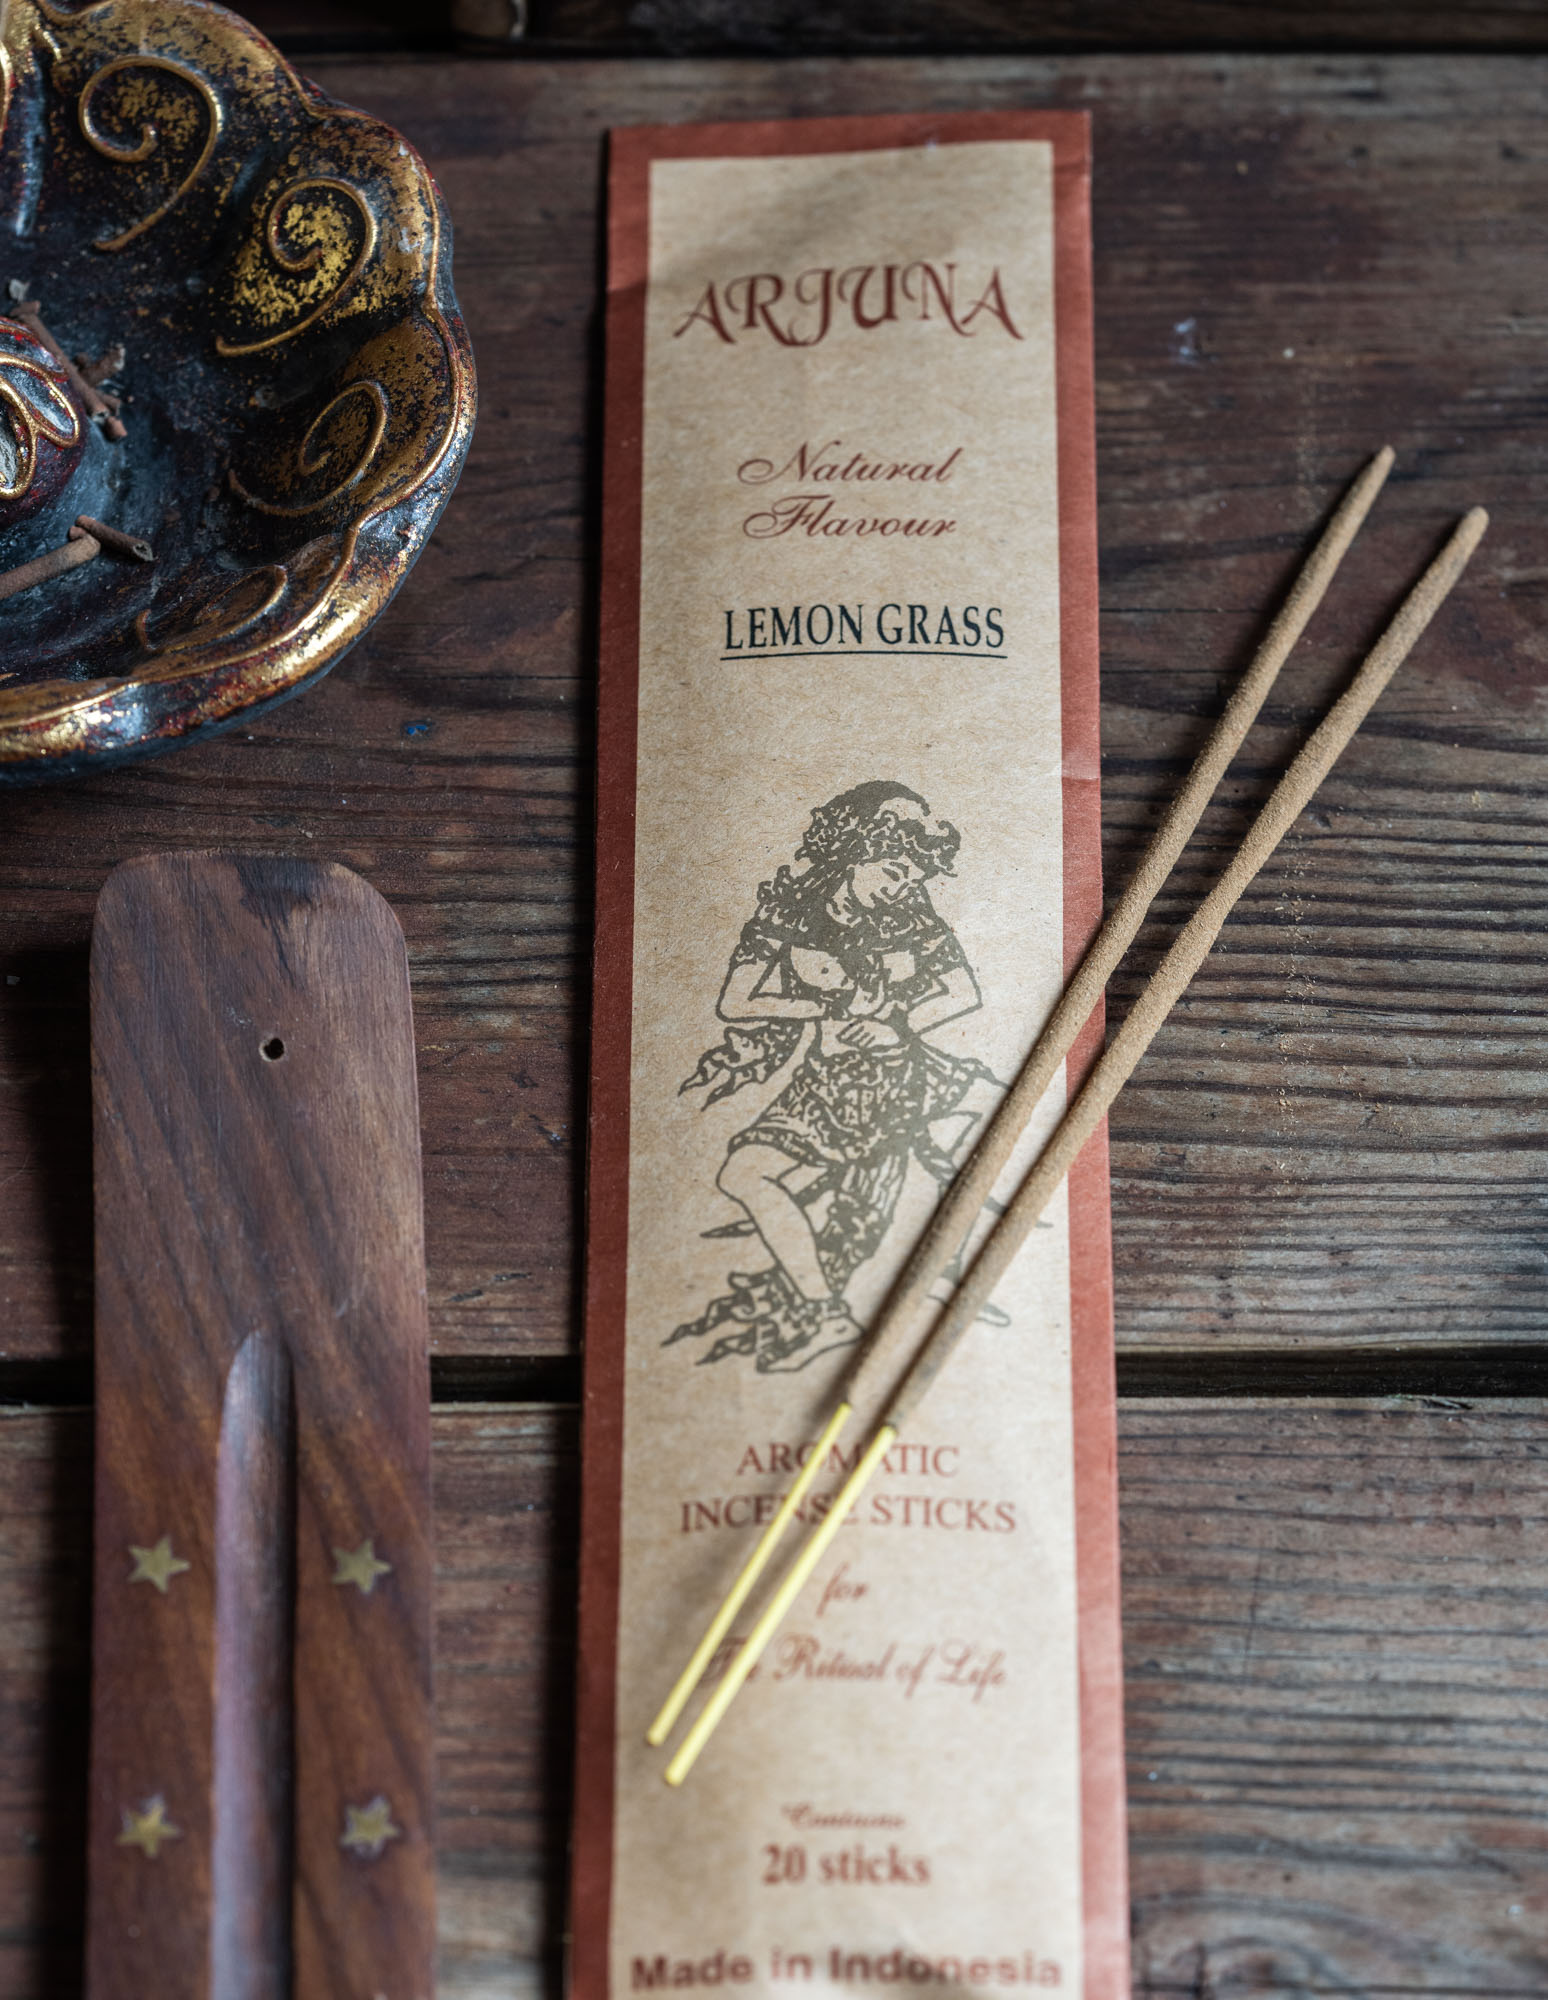 Arjuna Natural Flavour -suitsuke, Lemon grass